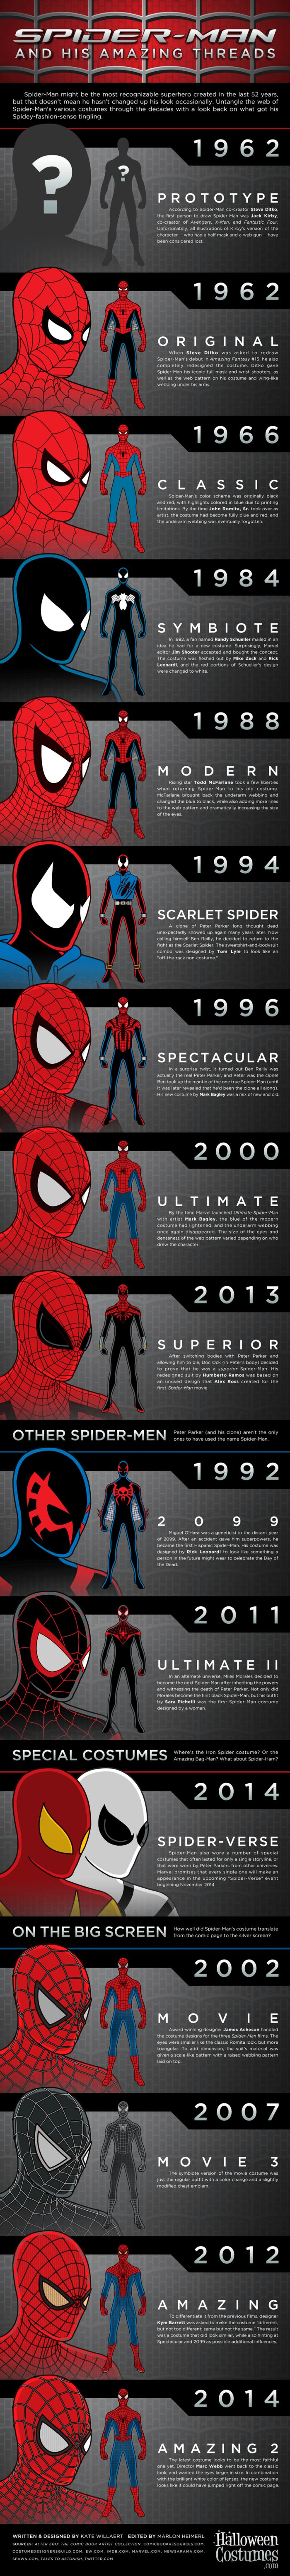 How The Spider-Man Costume Has Evolved Over The Years